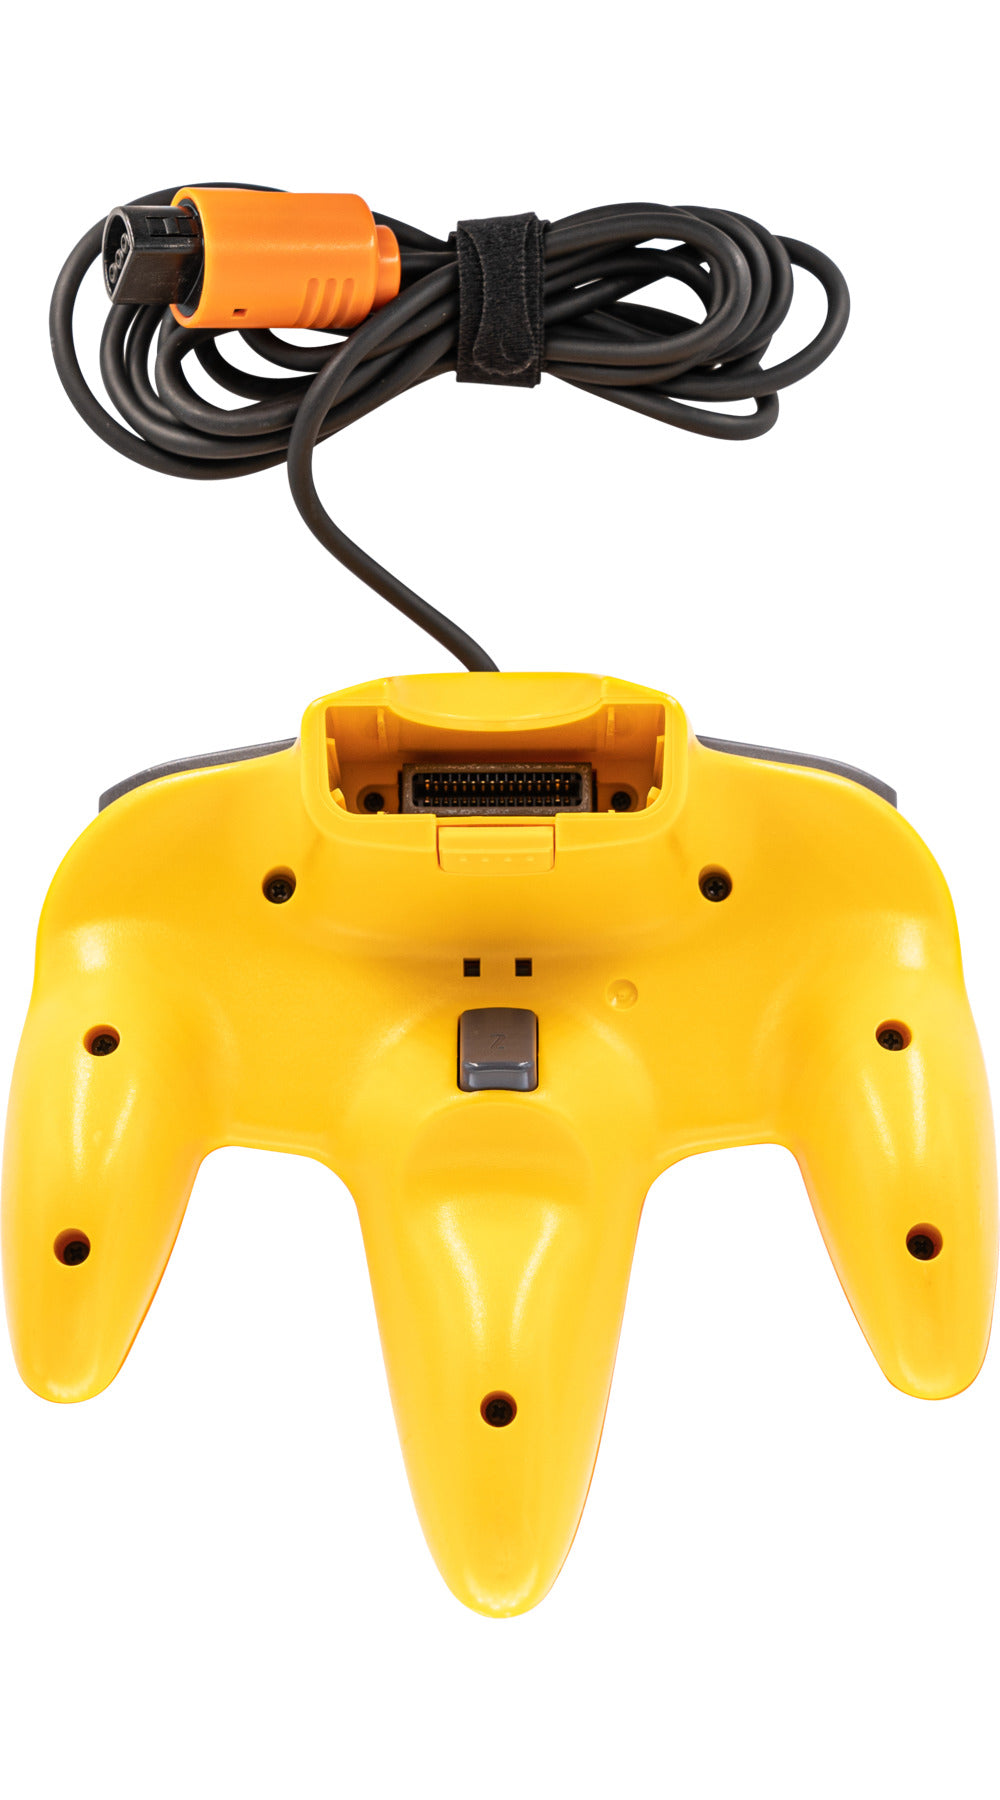 Nintendo N64 Controller Original Pikachu Orange & Yellow - Video Game Delivery